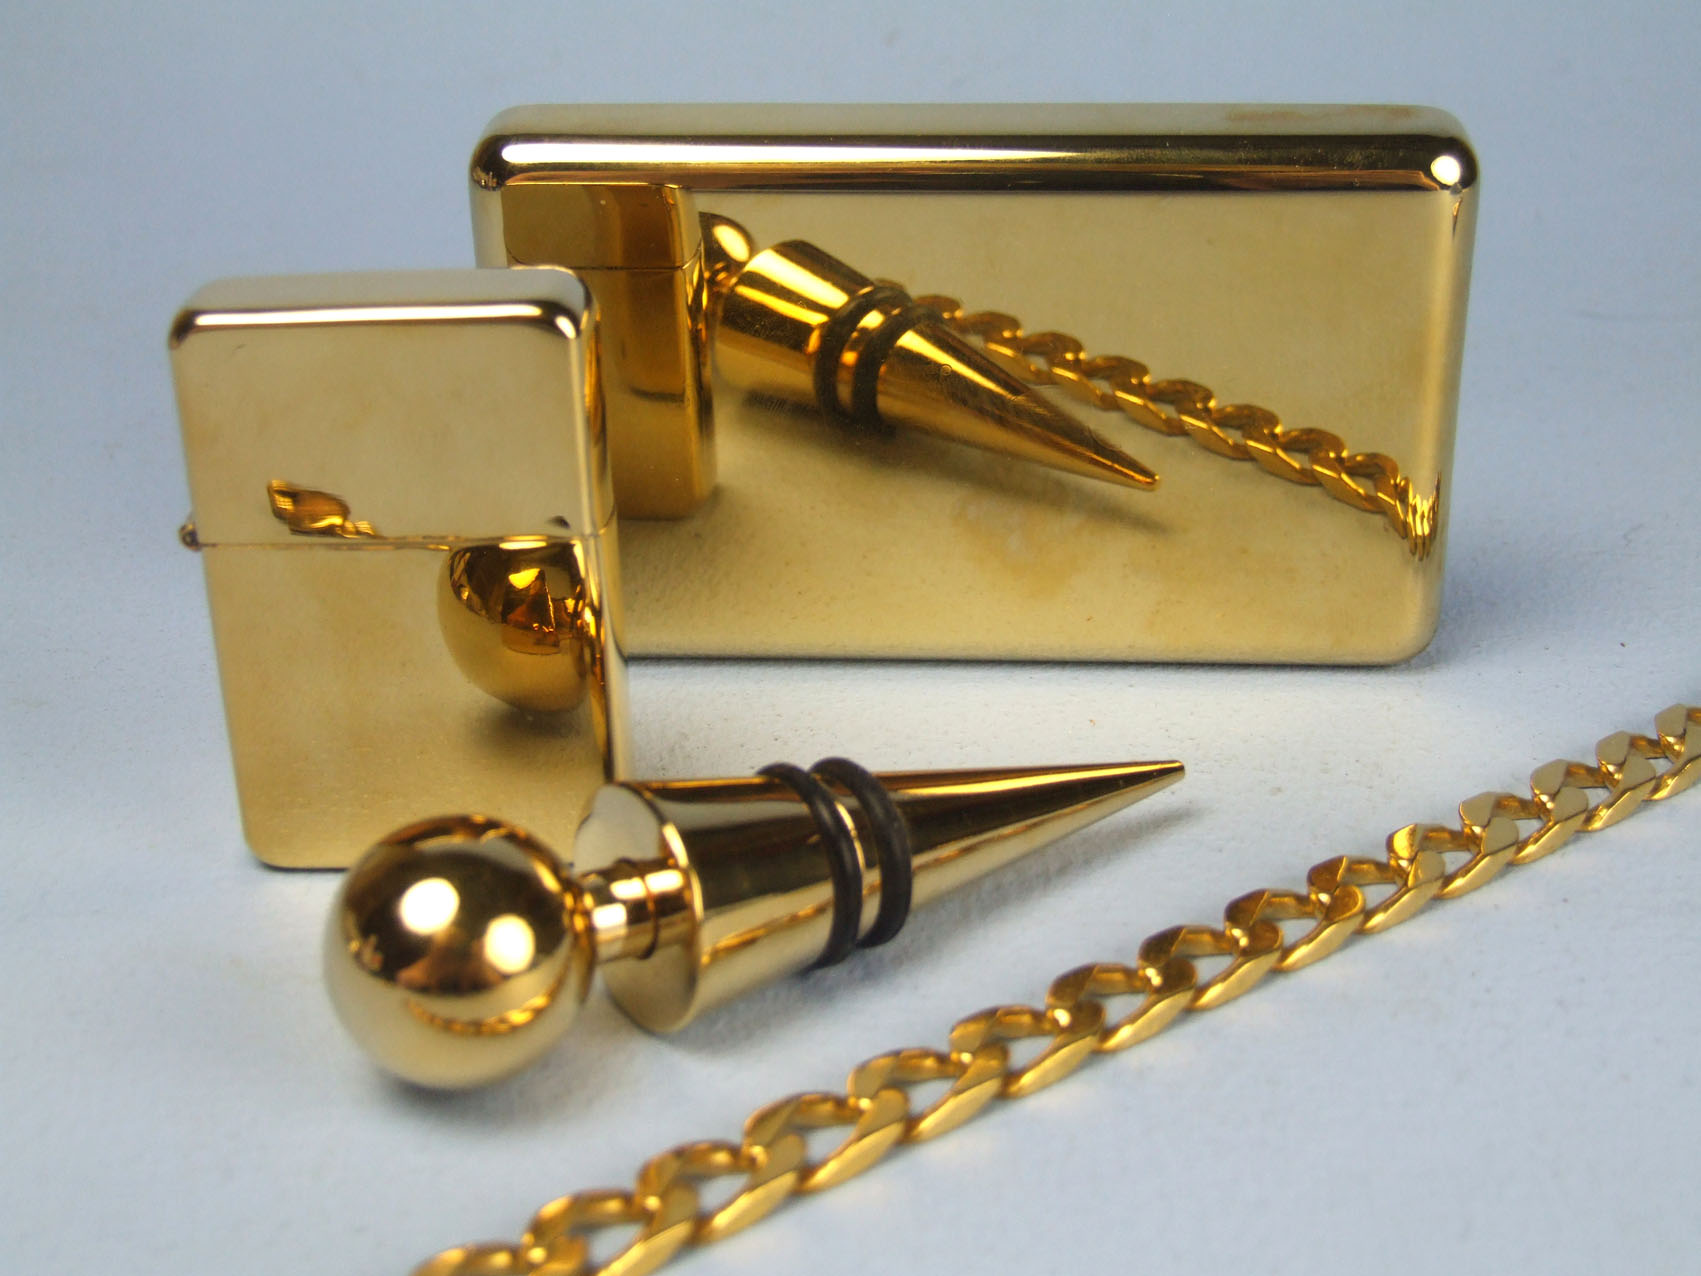 What Gold Plating Service Is? How Many Types of Gold Plating